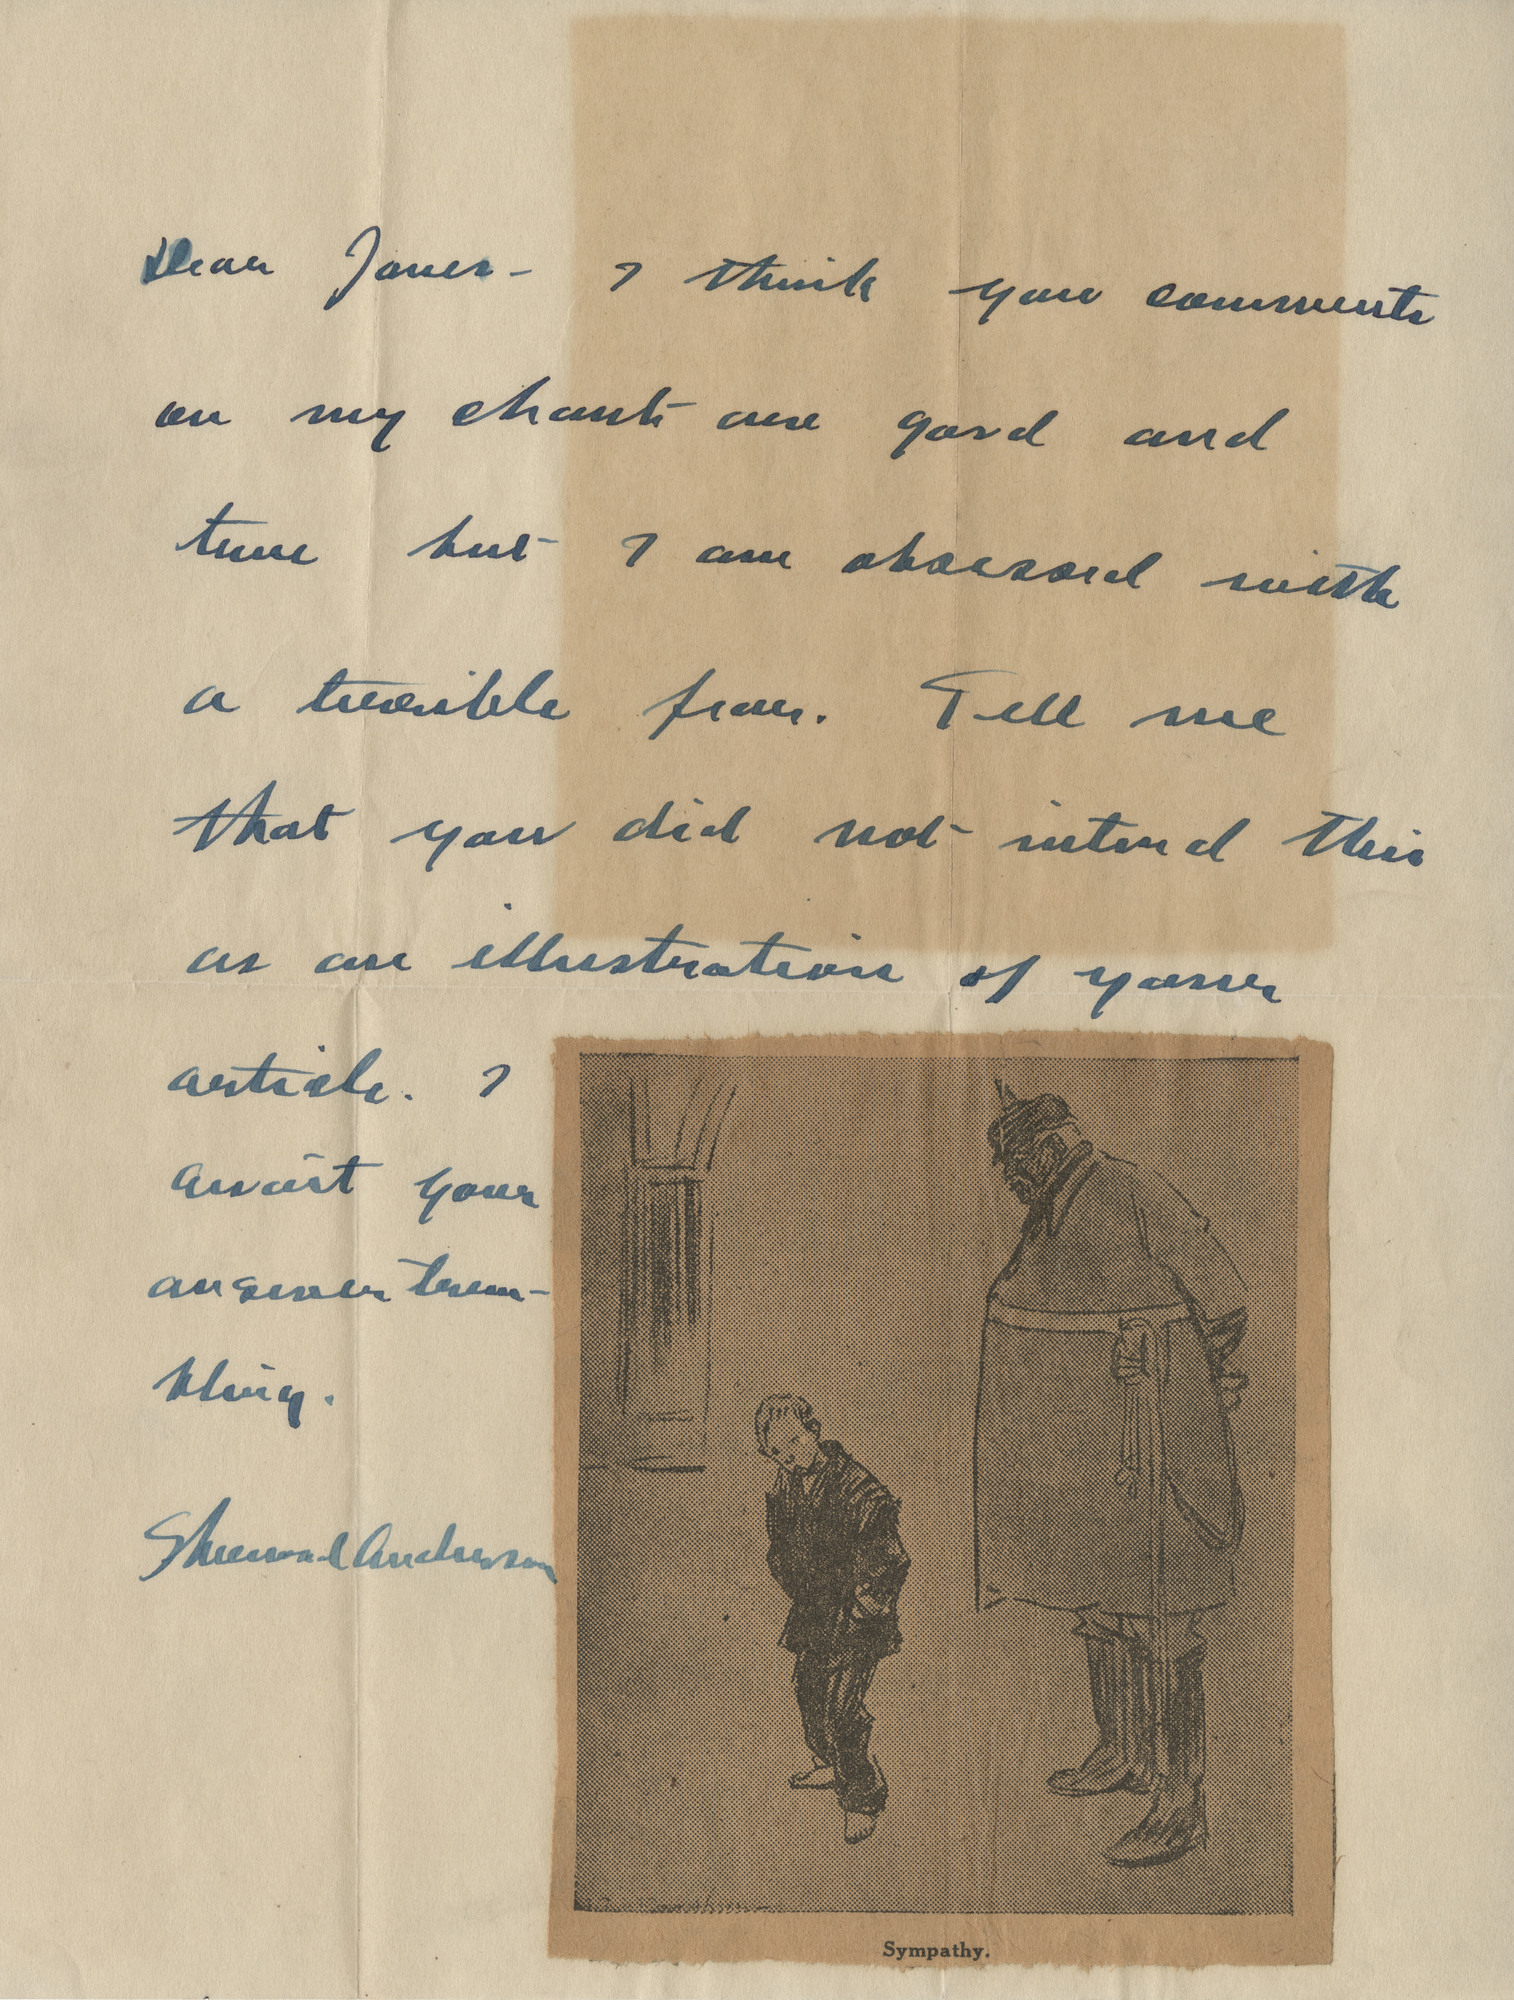 Ms2015-044_AndersonSherwood_Letter_1918_0426.jpg